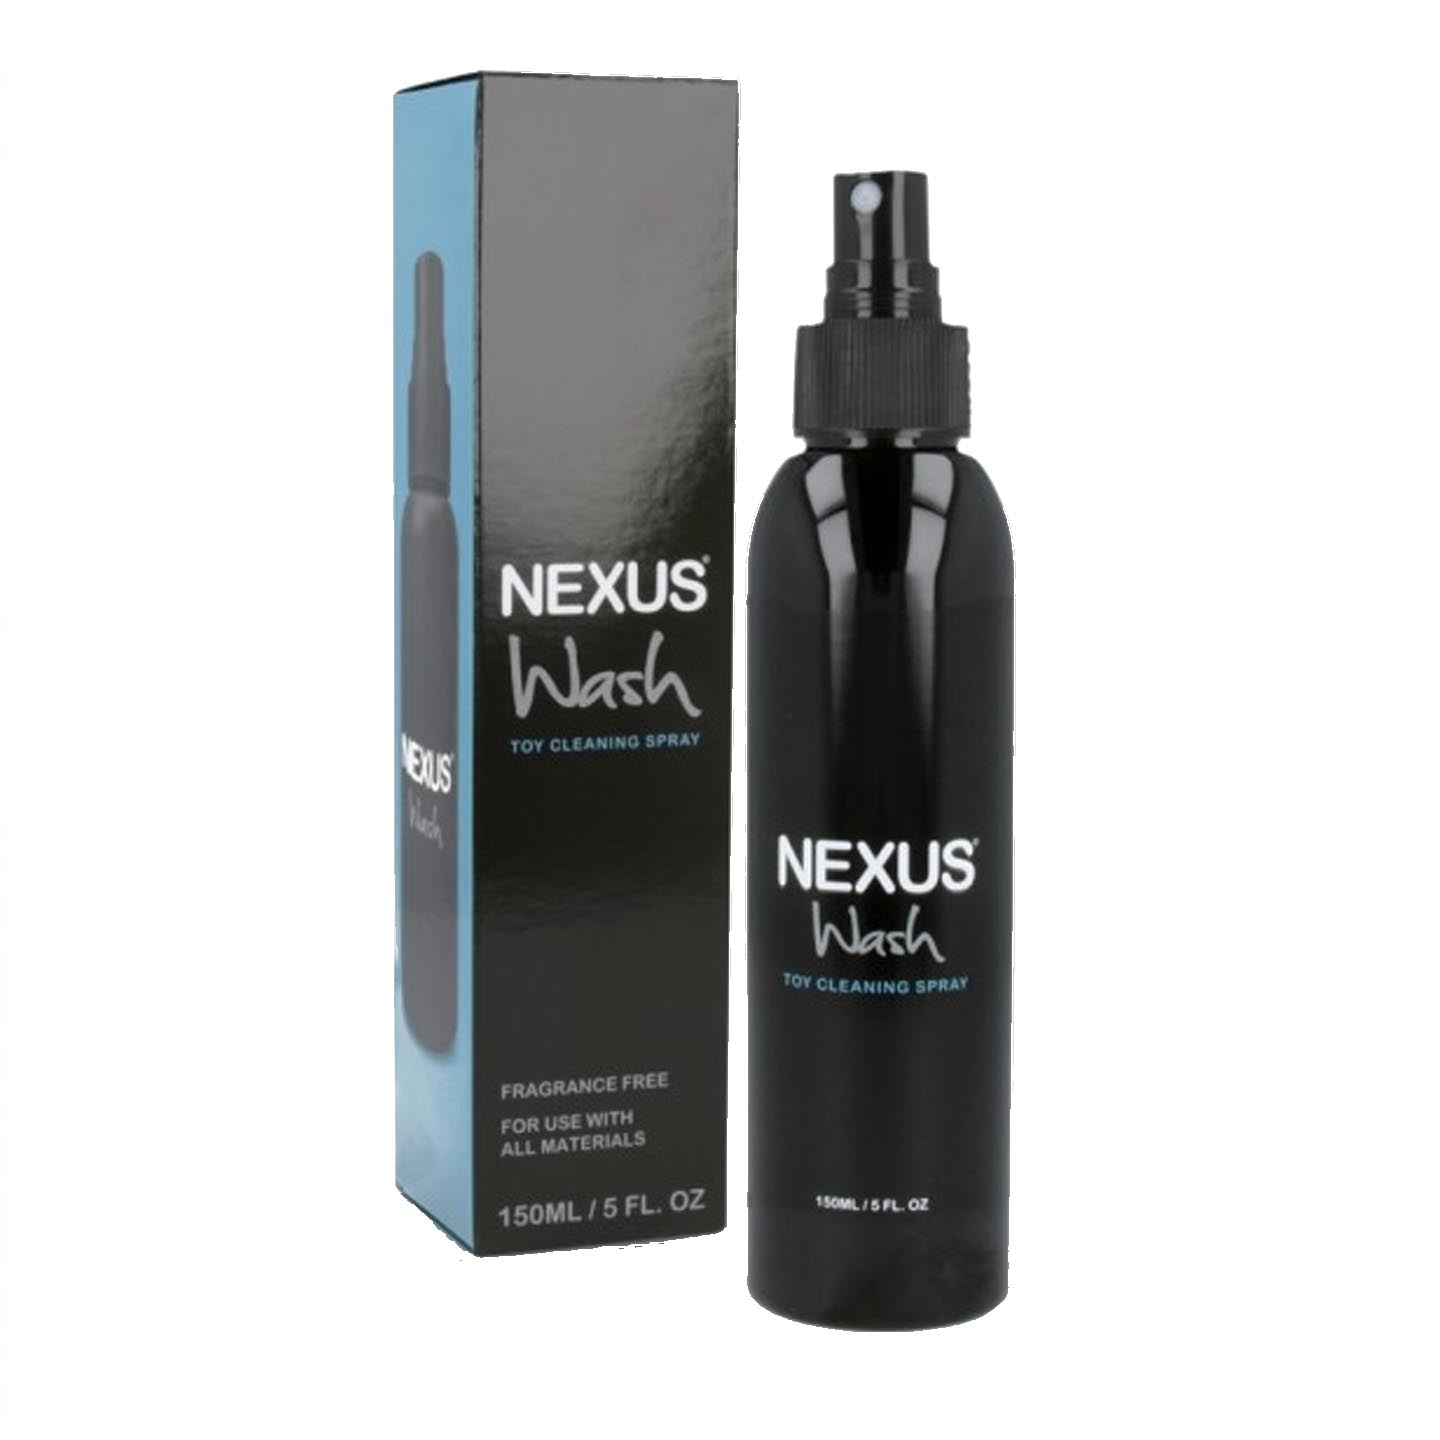 Nexus Wash Toy Cleaner Spray - Wanta.co.uk